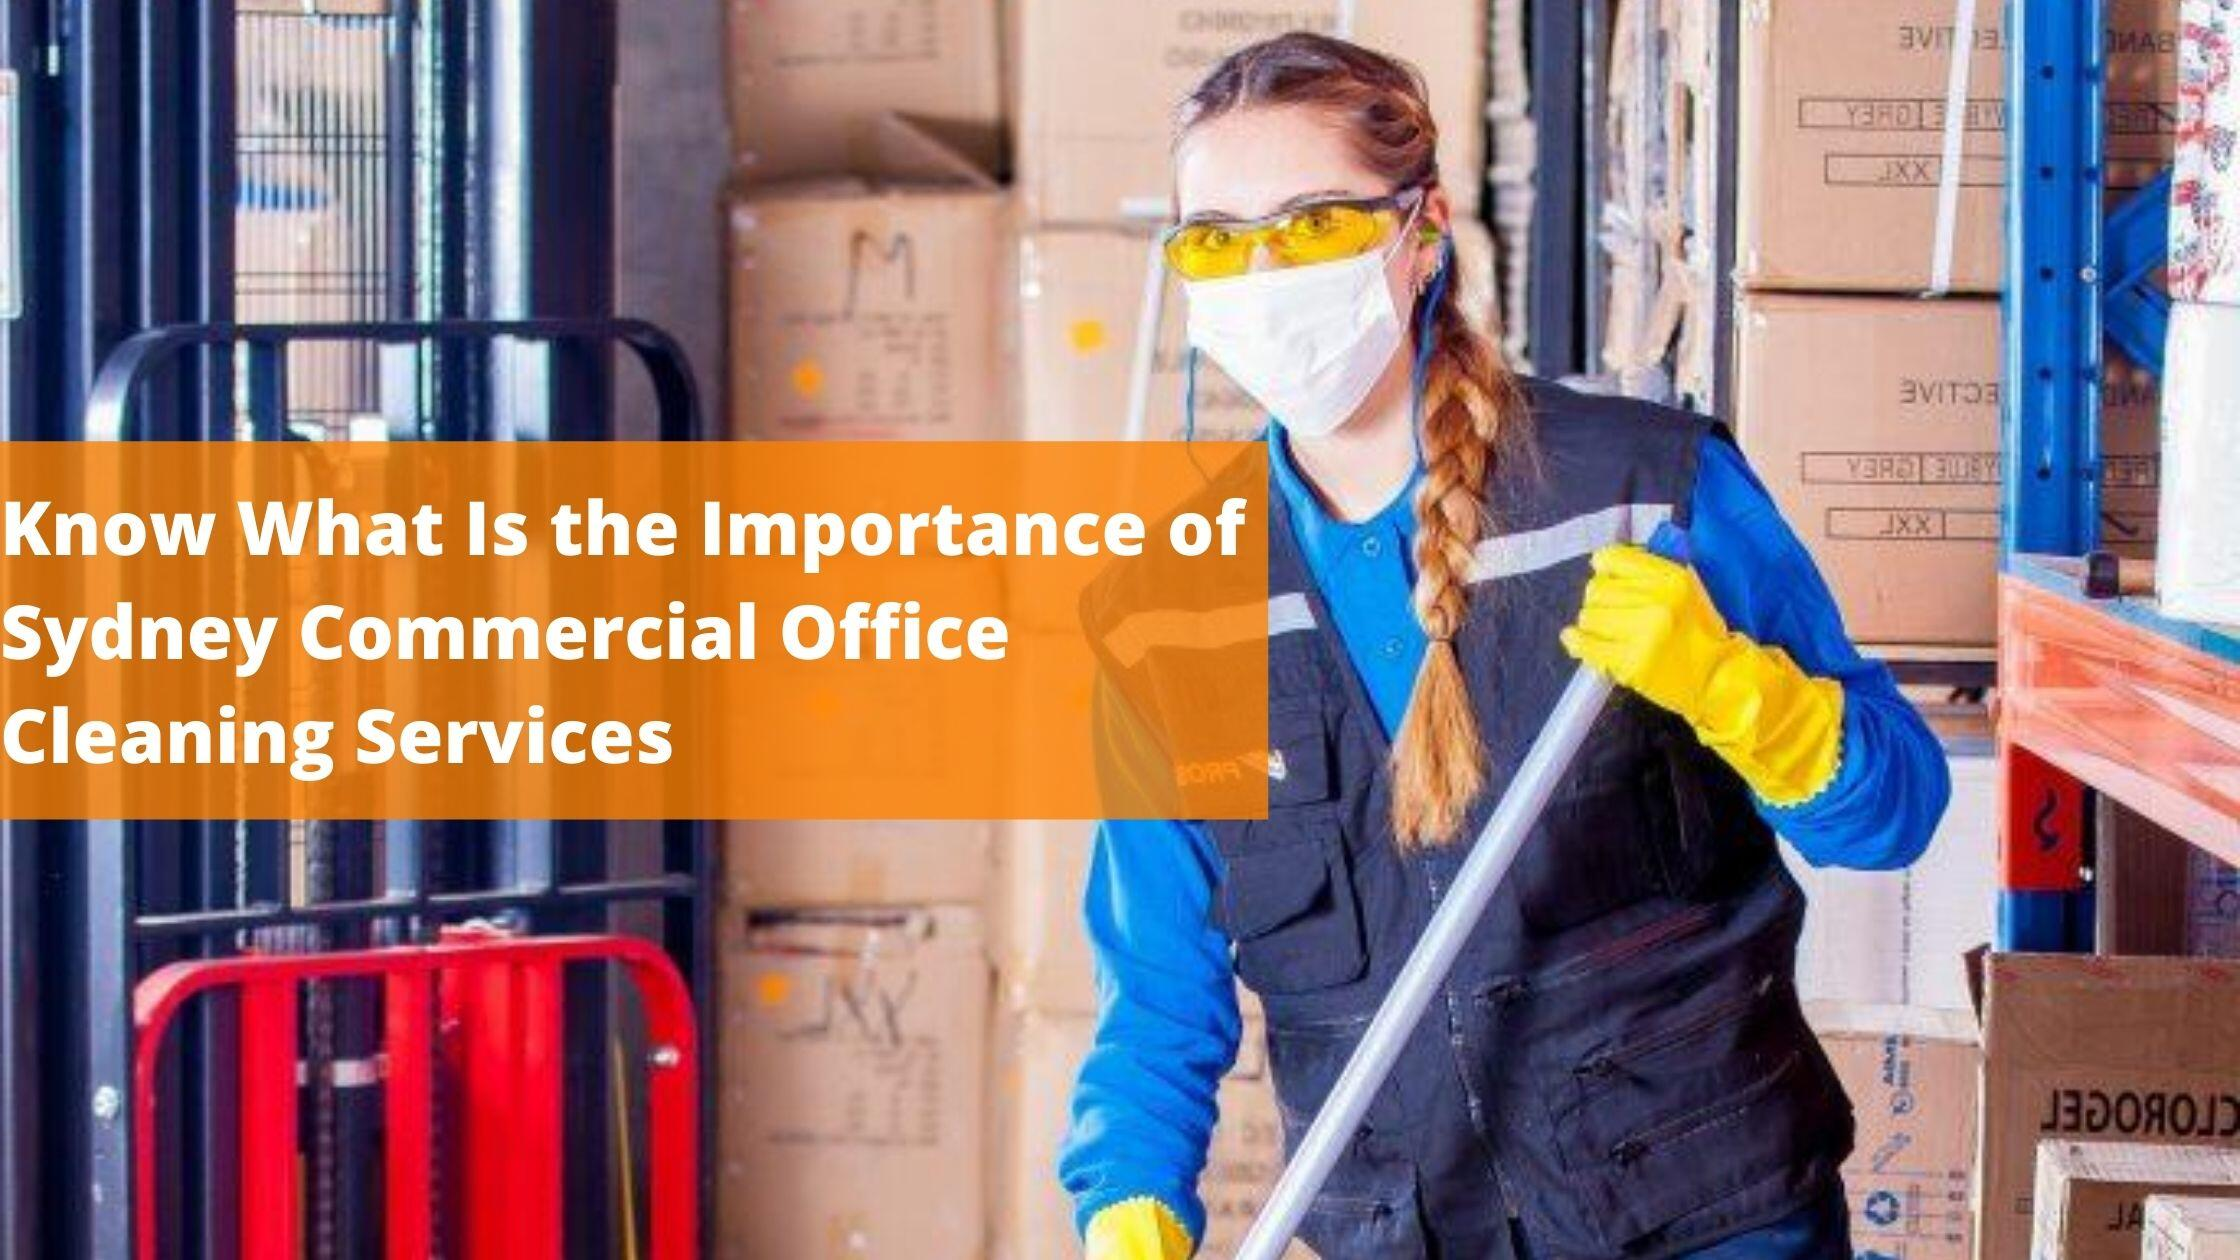 Sydney Commercial Office Cleaning Services